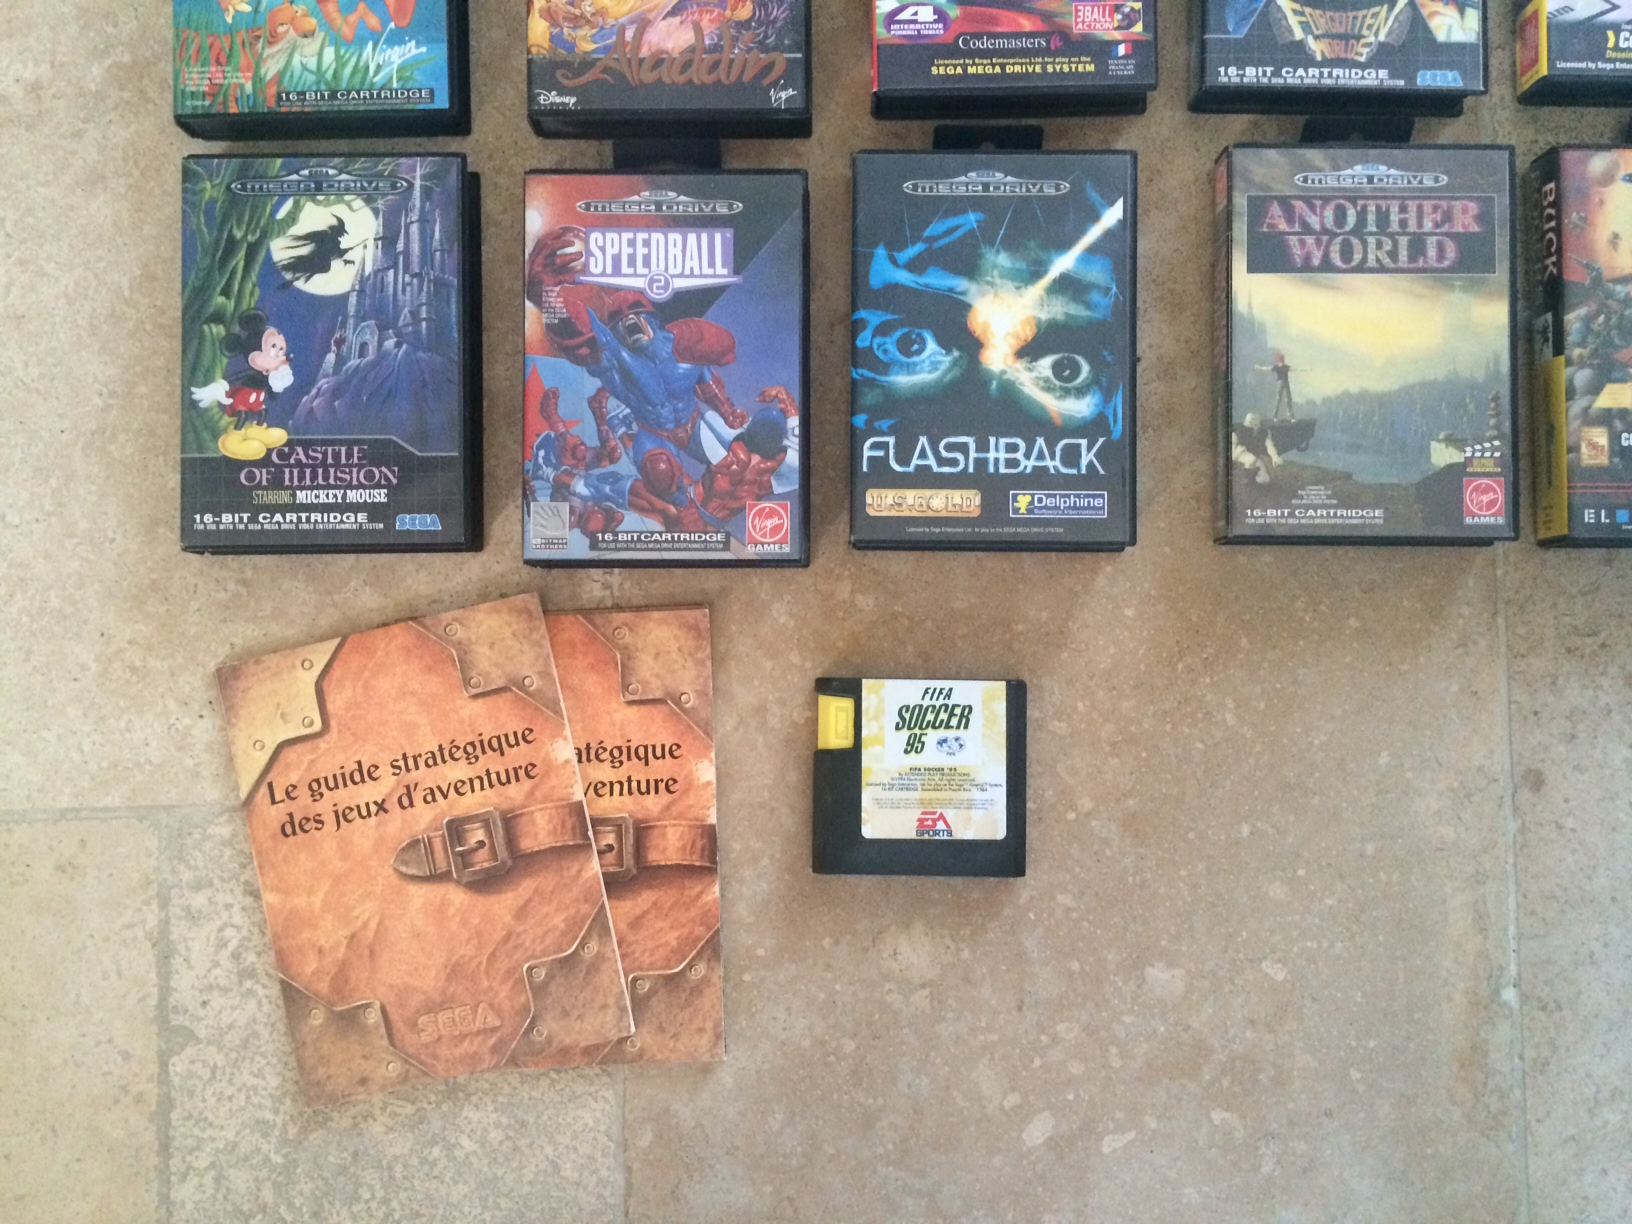 [VDS] lot de jeux megadrive pal  - a supprimer - nouv topic en cours 948538photo41